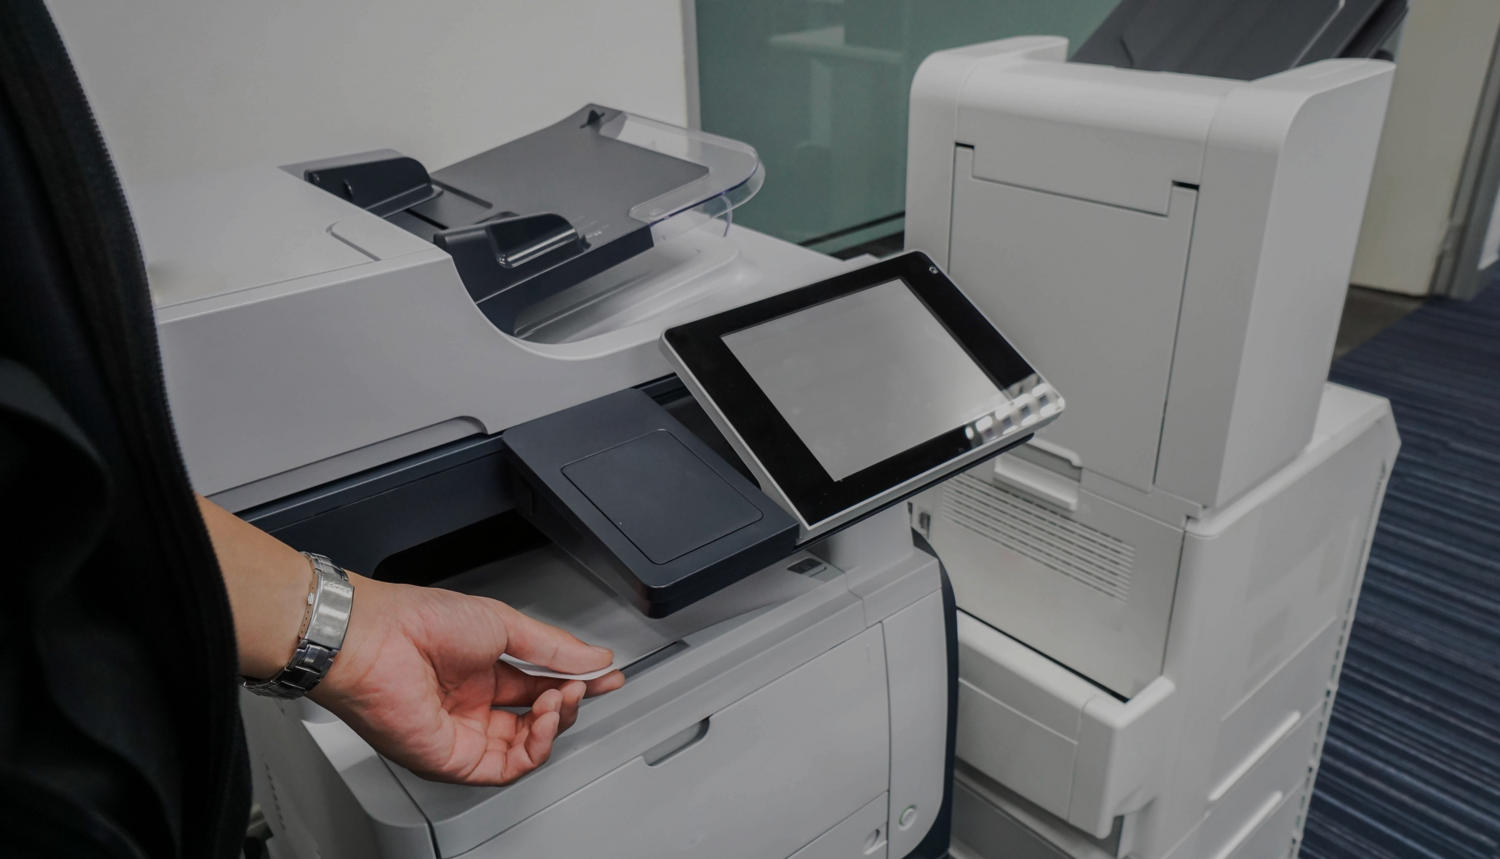 Managed Print Services Solves Costly Problems for Eir